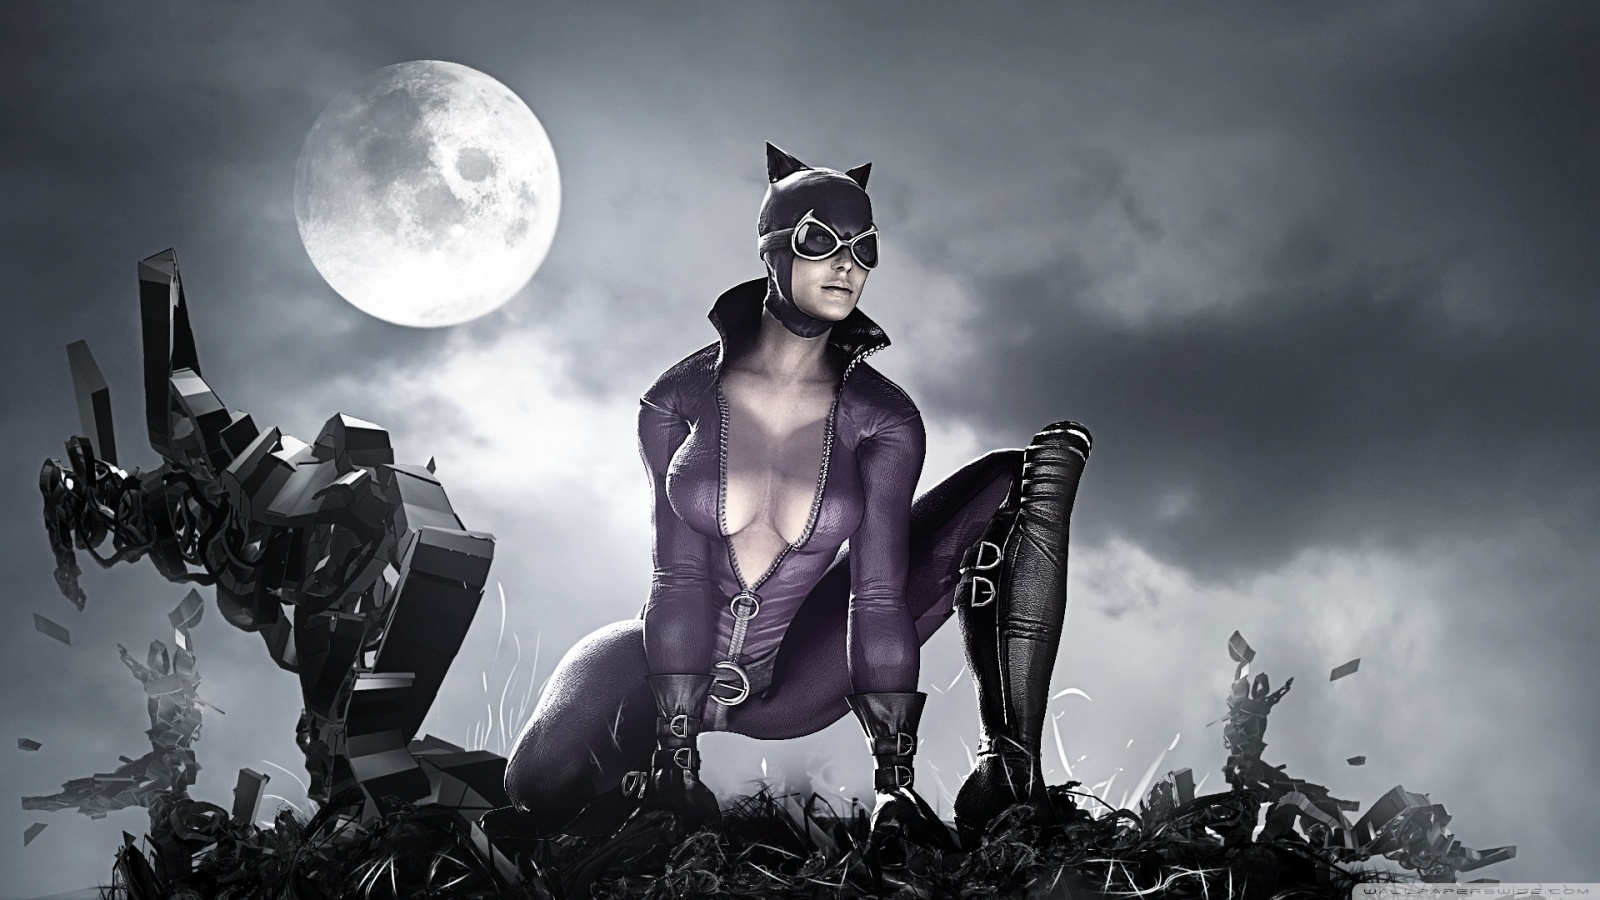 City Catwoman Hd Desktop Widescreen 1600x900 pixel City HD Wallpaper 1600x900